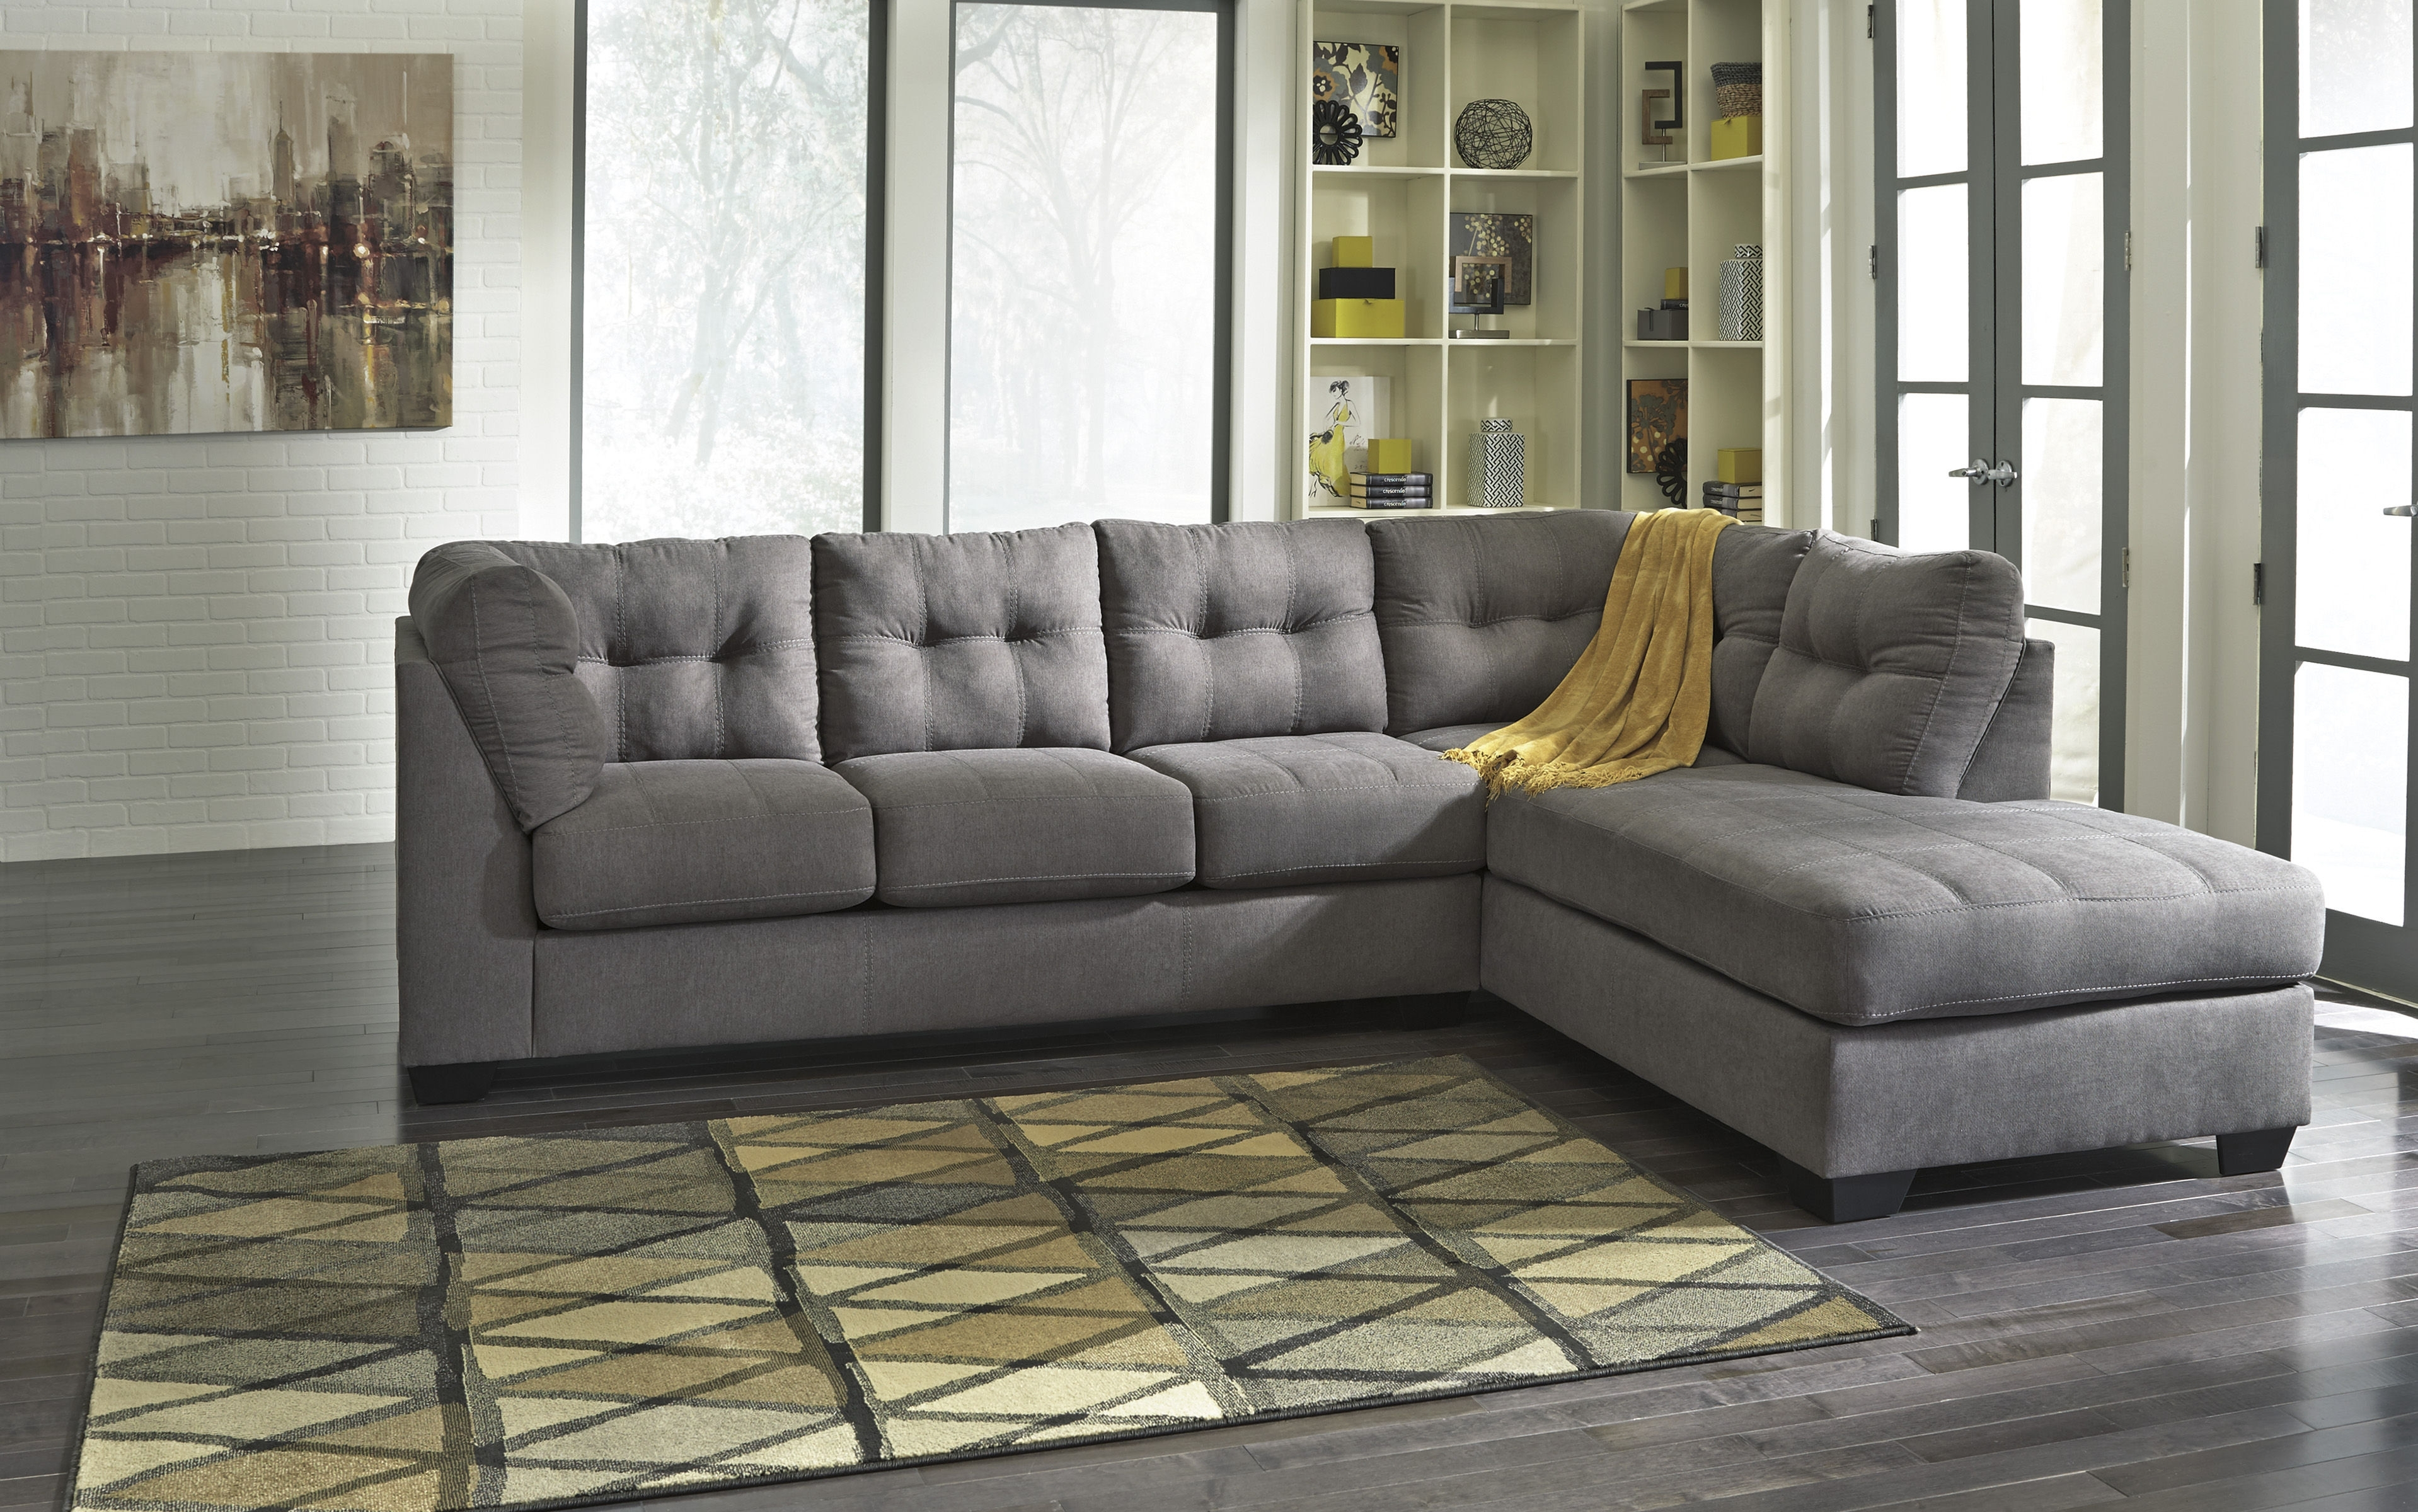 Ashley Furniture Maier Charcoal Raf Chaise Sectional | The Classy Home Inside Lucy Grey 2 Piece Sectionals With Laf Chaise (View 9 of 25)